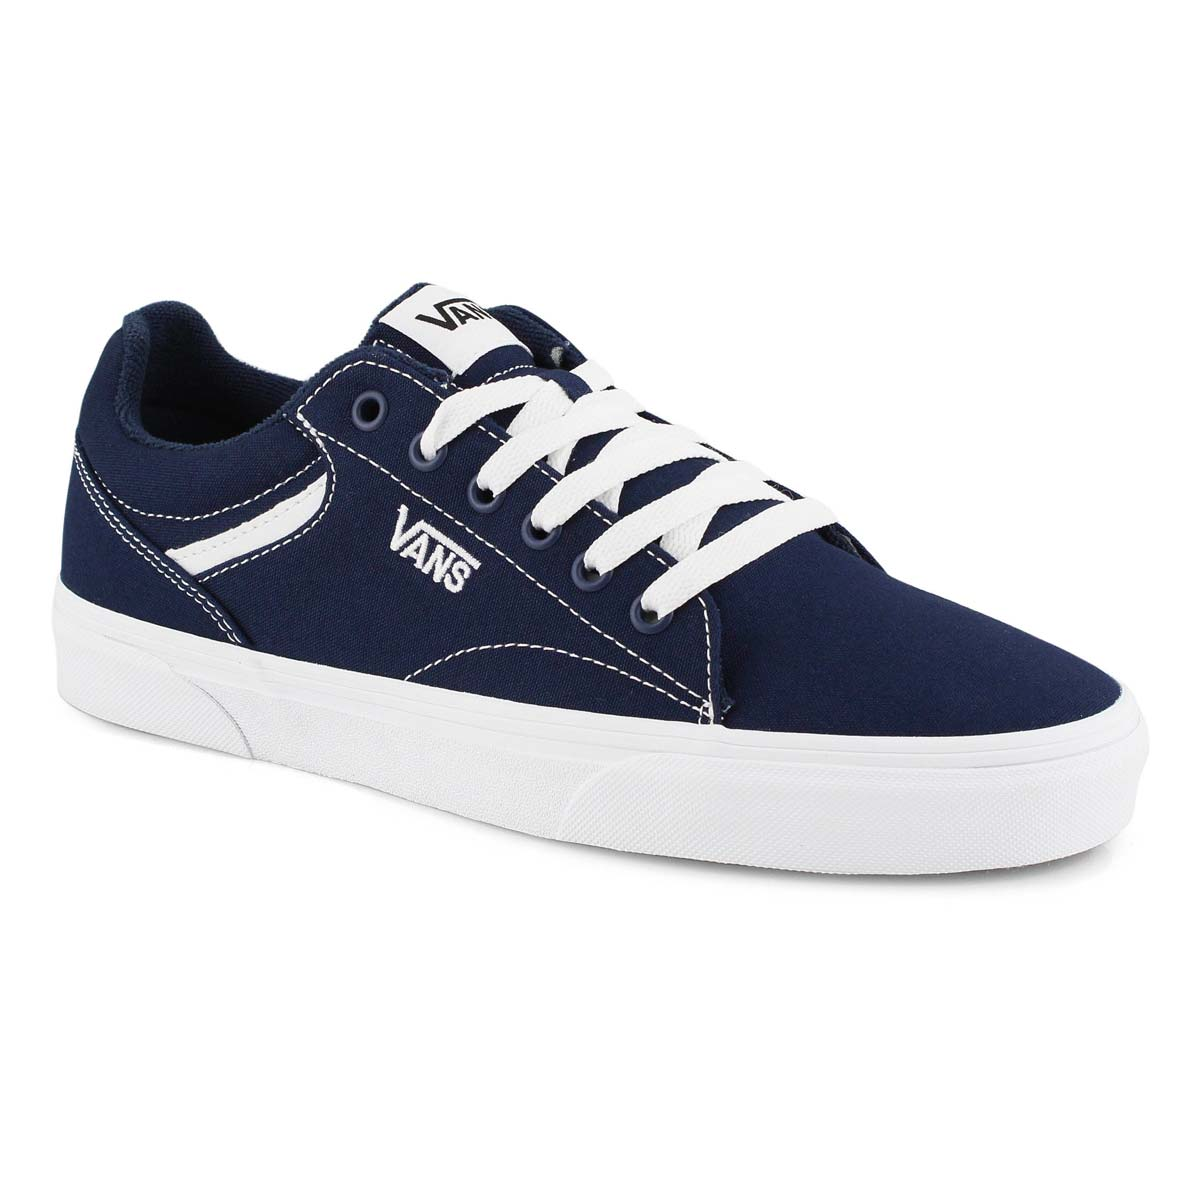 Vans Men's Seldan Canvas Shoes - Dress Blues/White